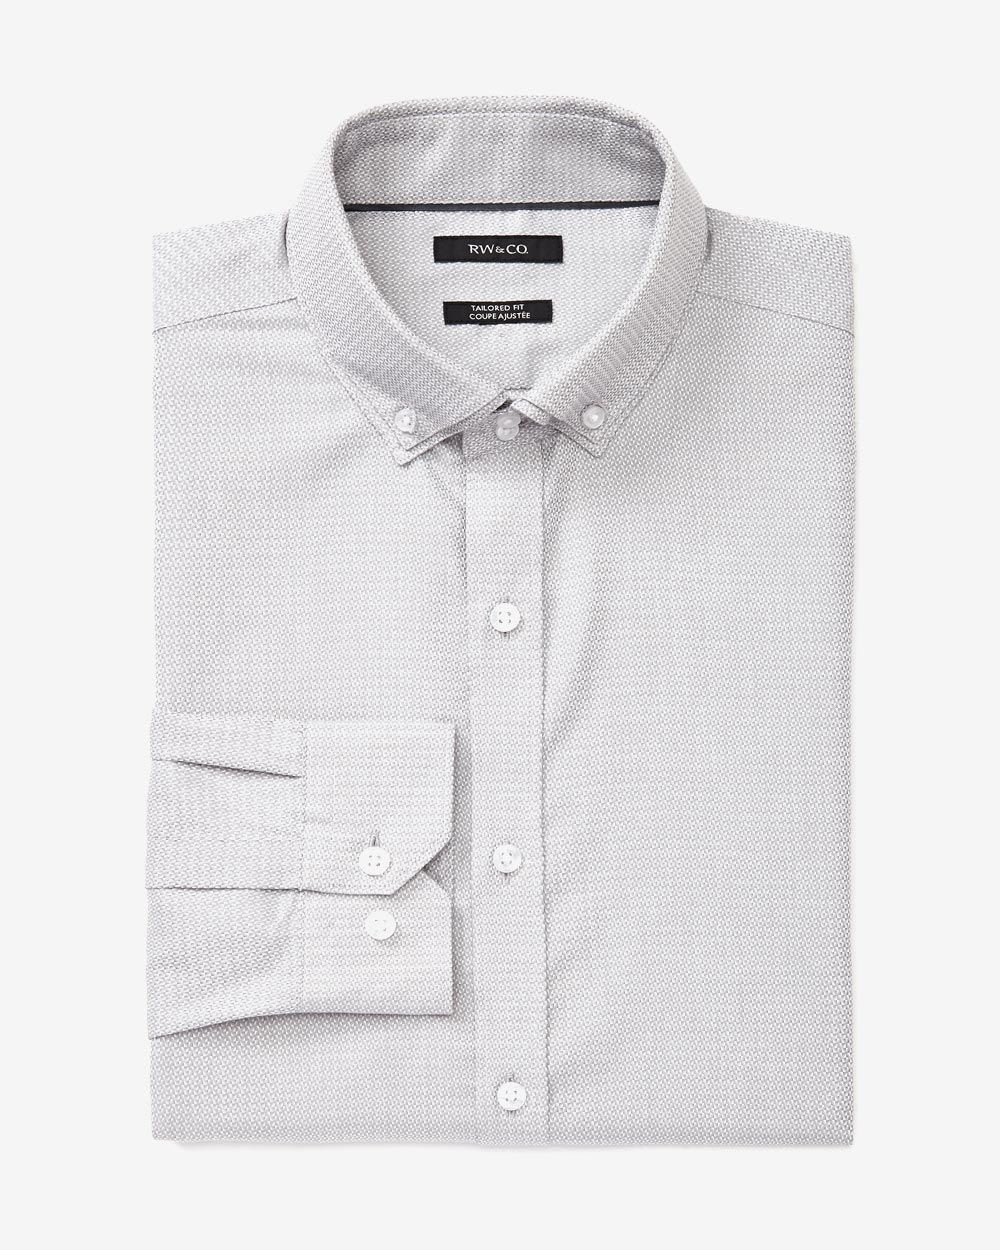 Tailored fit double collar dress shirt rw co for Tailored fit dress shirts